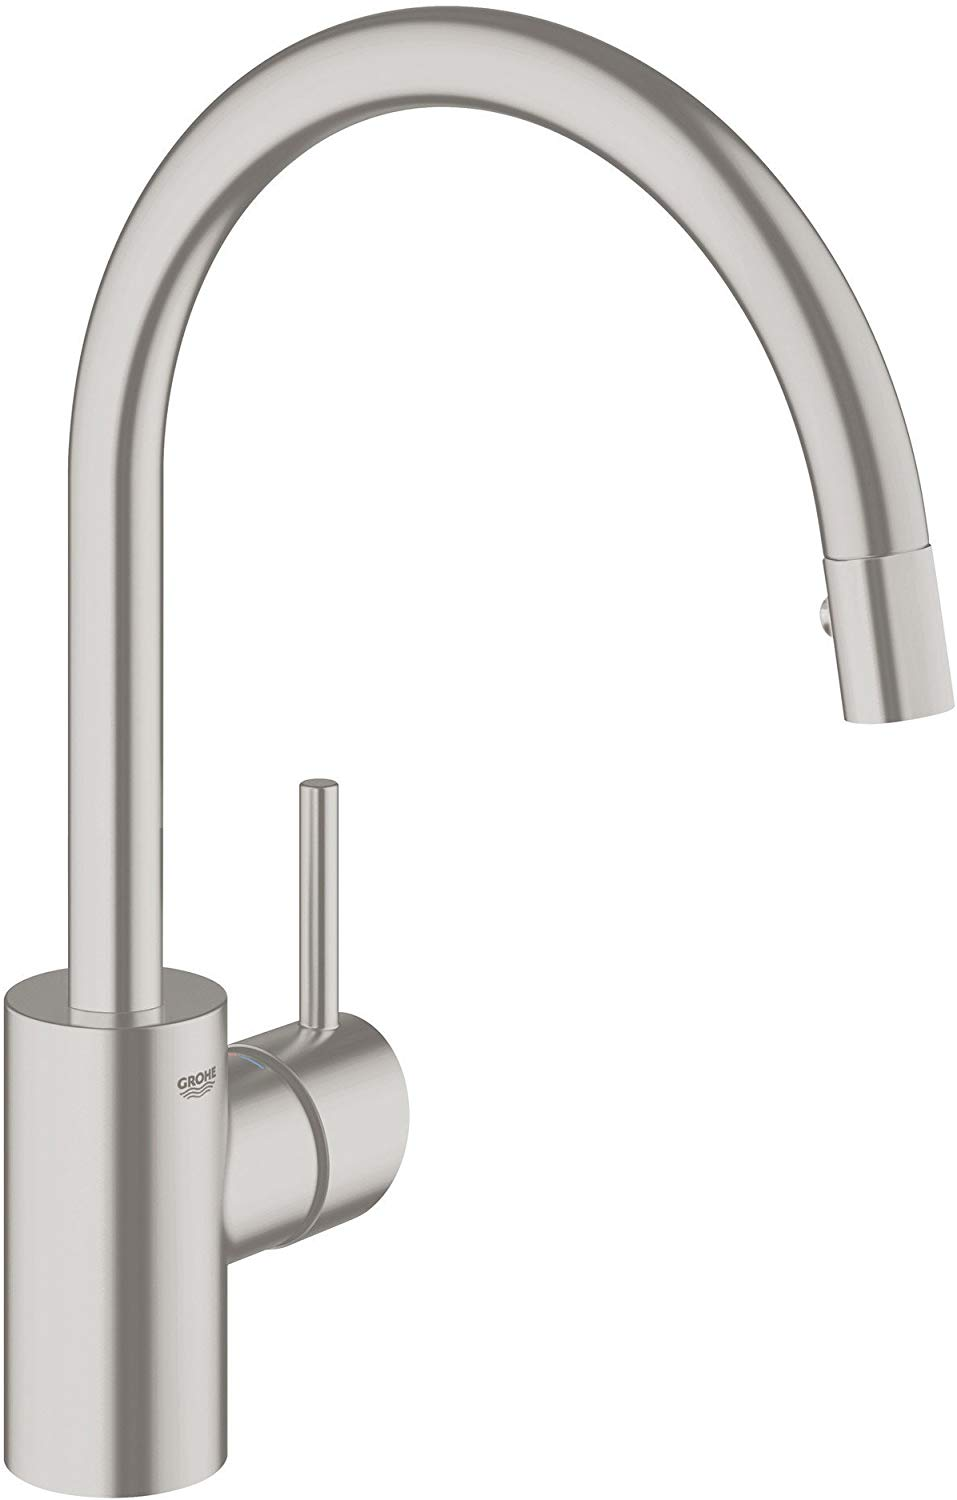 Grohe Single Handle Pull Down Kitchen Faucet